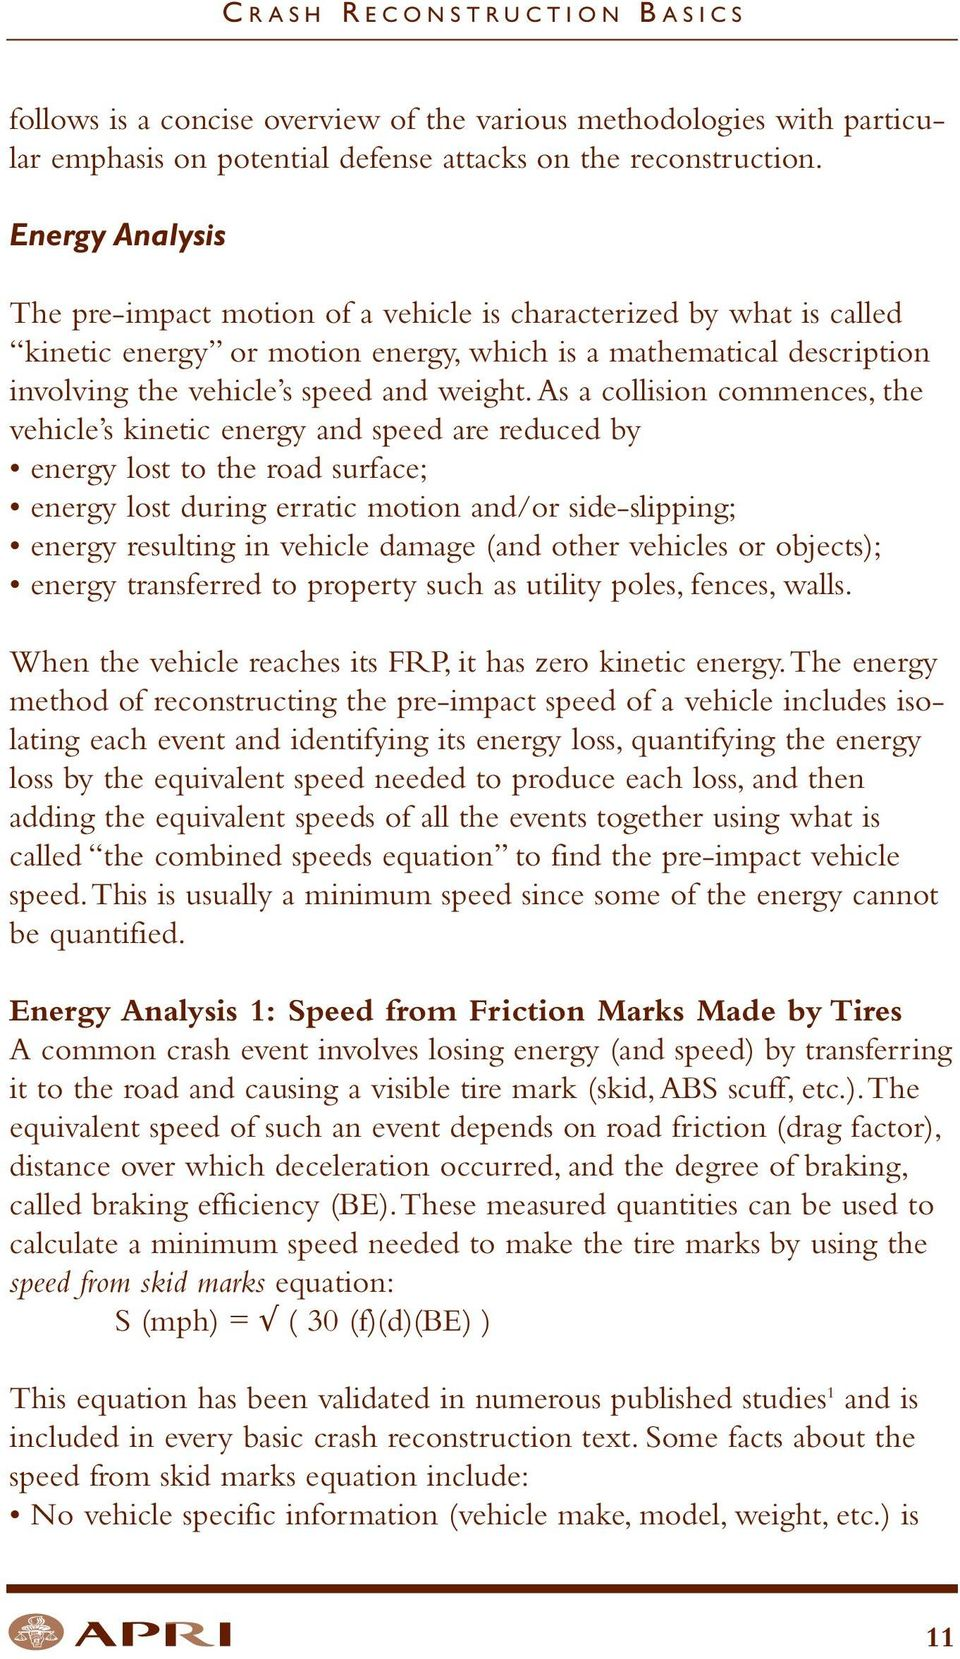 As a collision commences, the vehicle s kinetic energy and speed are reduced by energy lost to the road surface; energy lost during erratic motion and/or side-slipping; energy resulting in vehicle